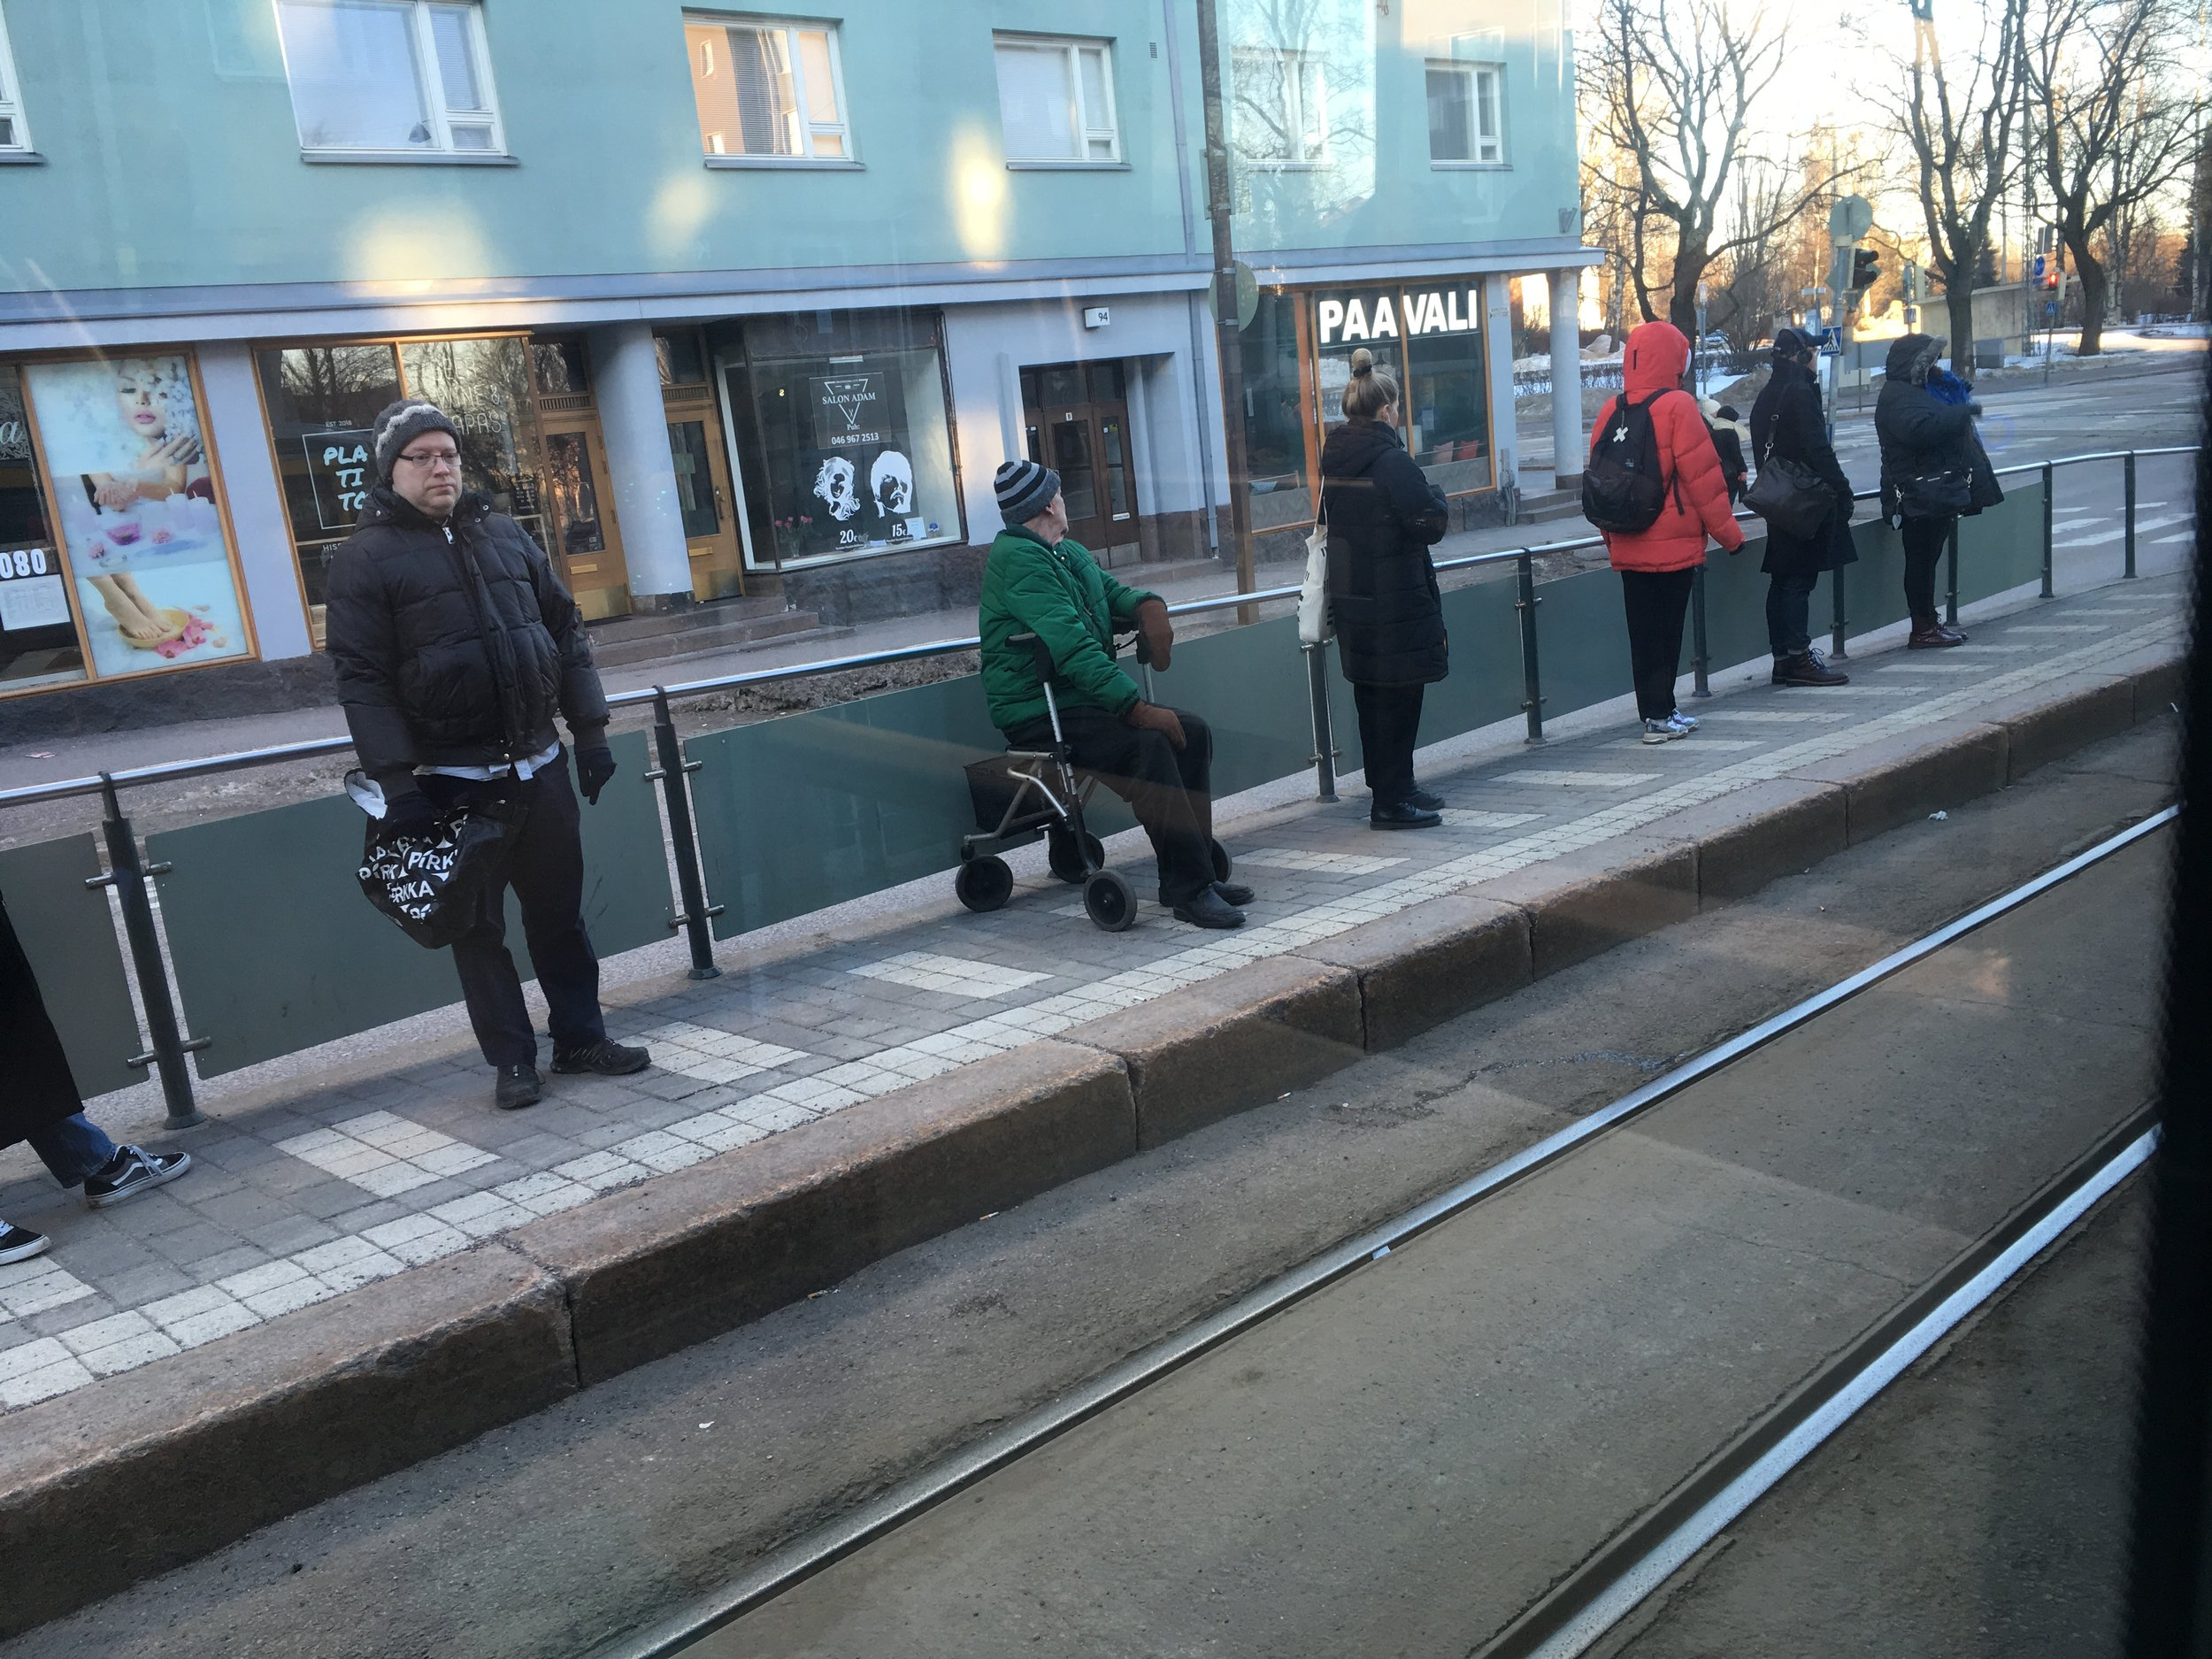 Watching people waiting for the tram in Helsinki is nothing like people waiting for the bus in Granada.